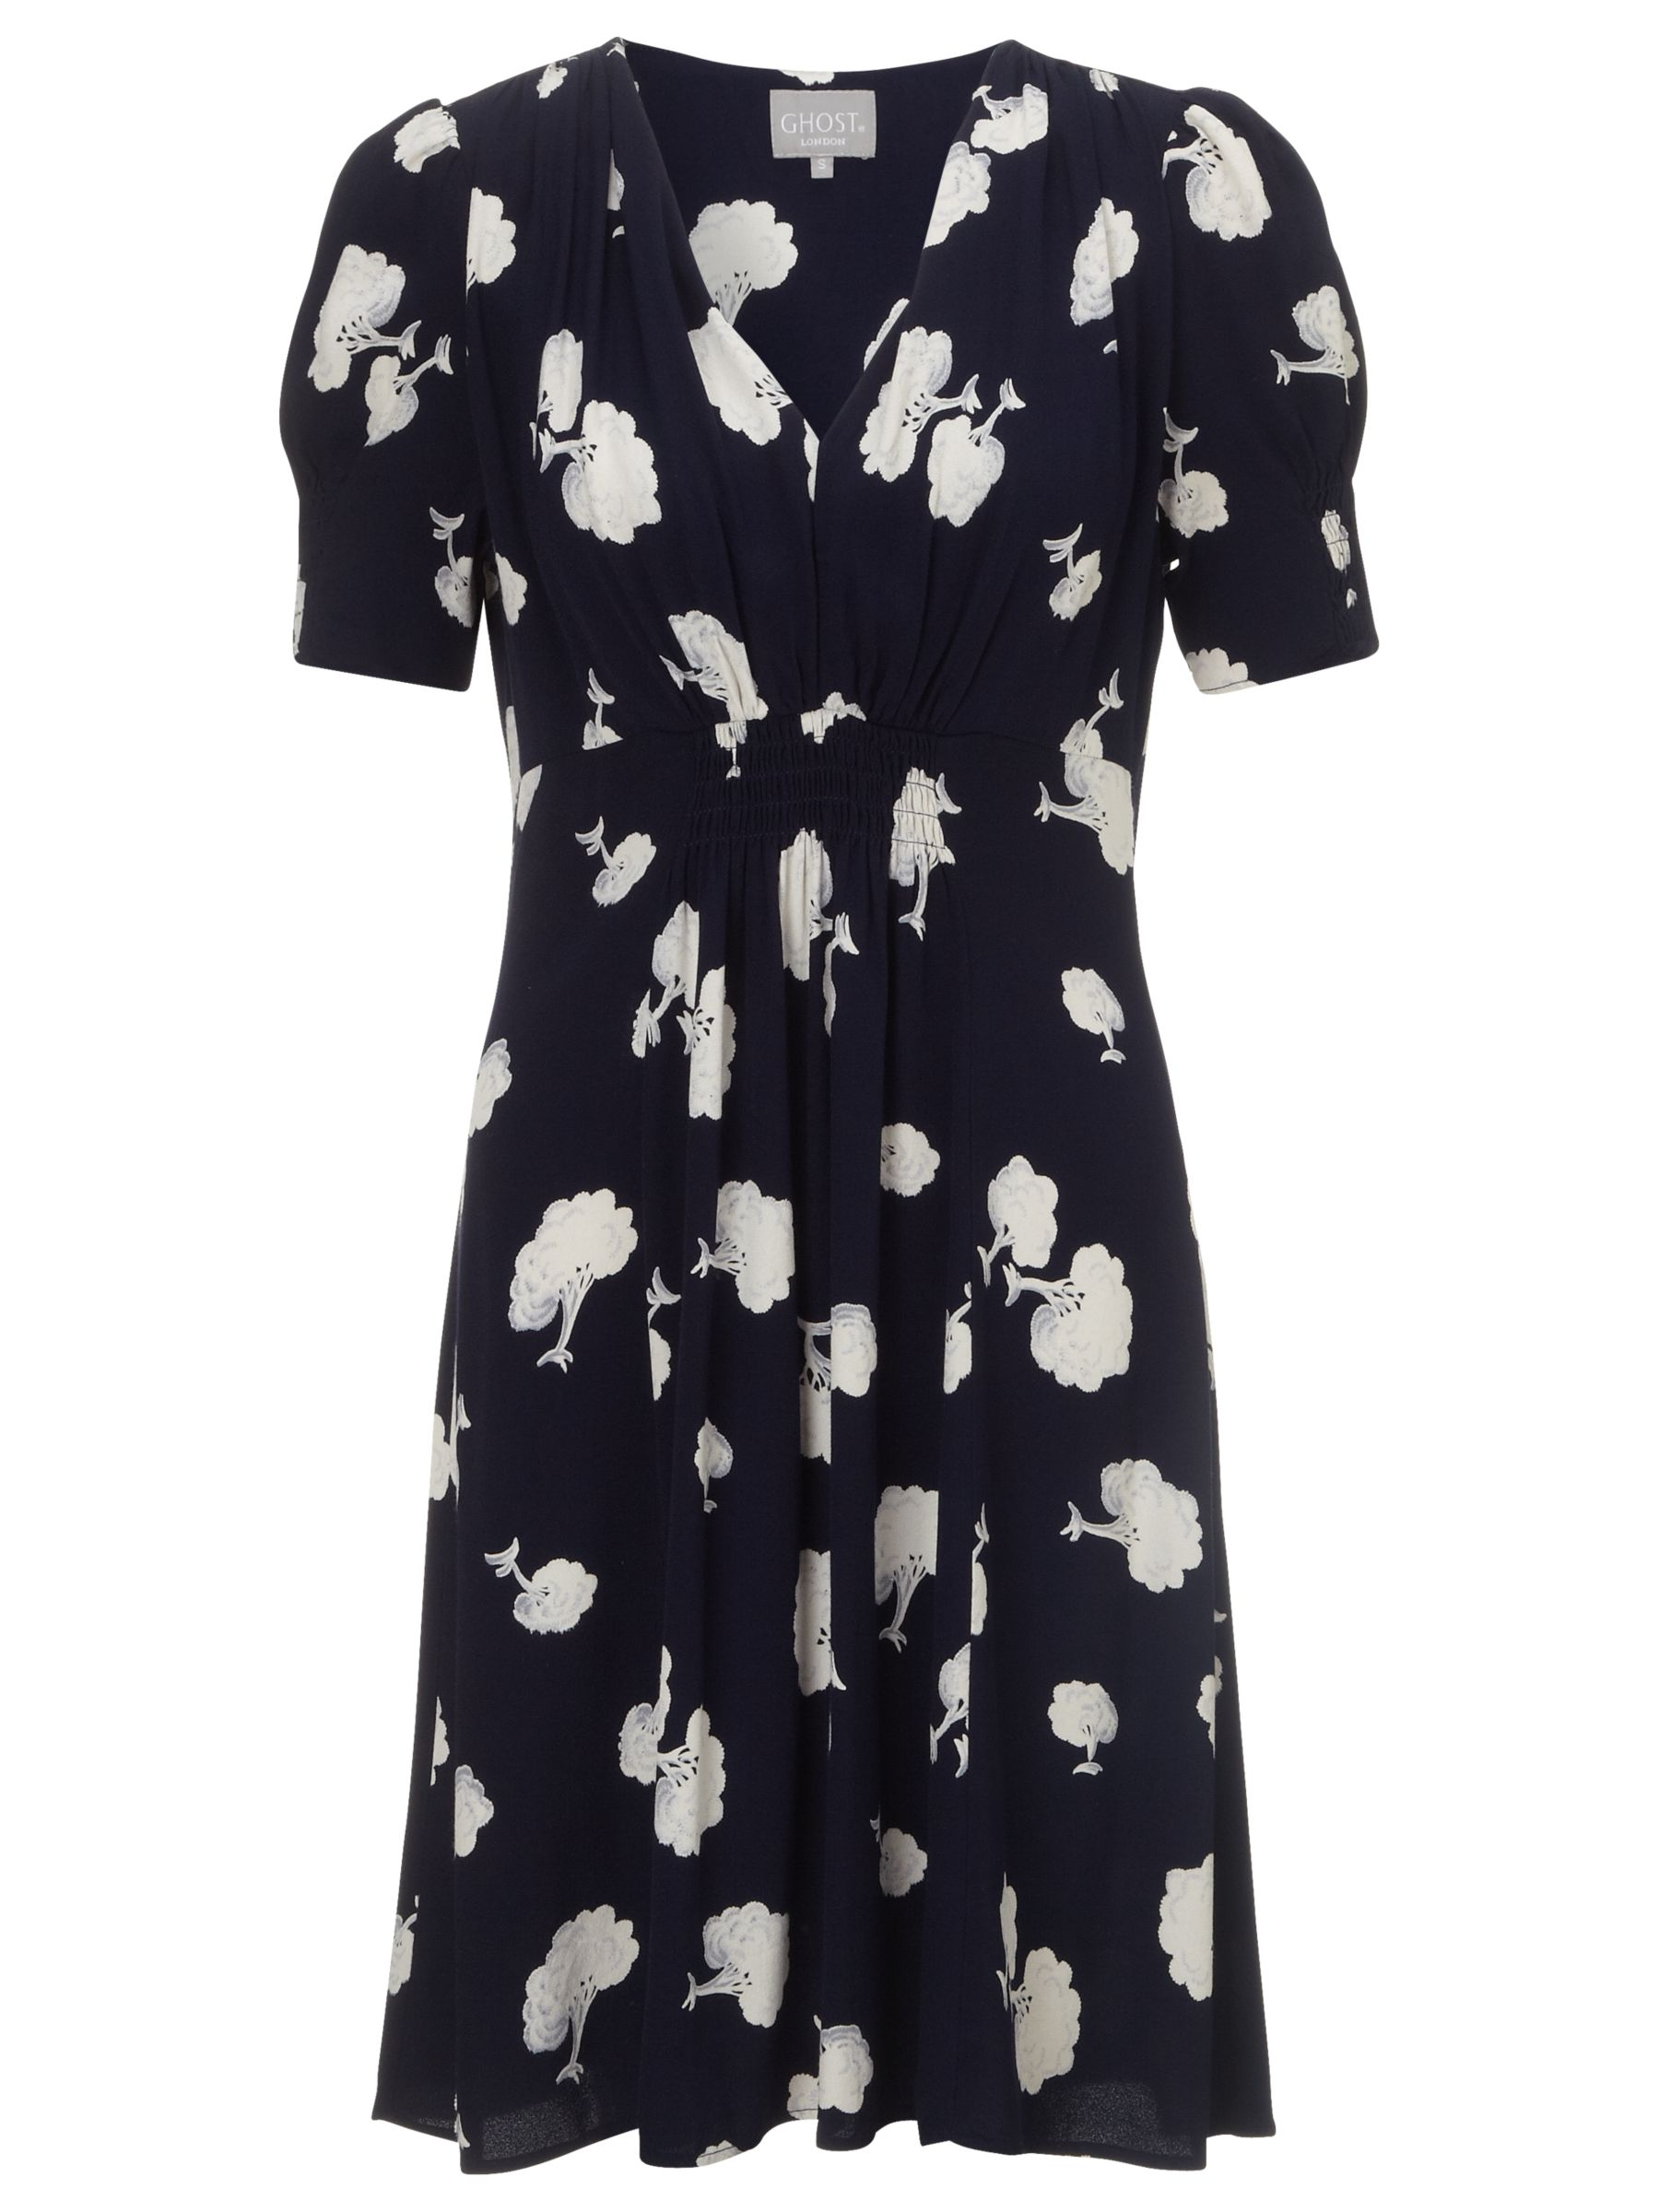 ghost chrystal dress vintage trees, ghost, chrystal, dress, vintage, trees, m|xs|l|s, women, womens dresses, gifts, wedding, wedding clothing, female guests, 1714208